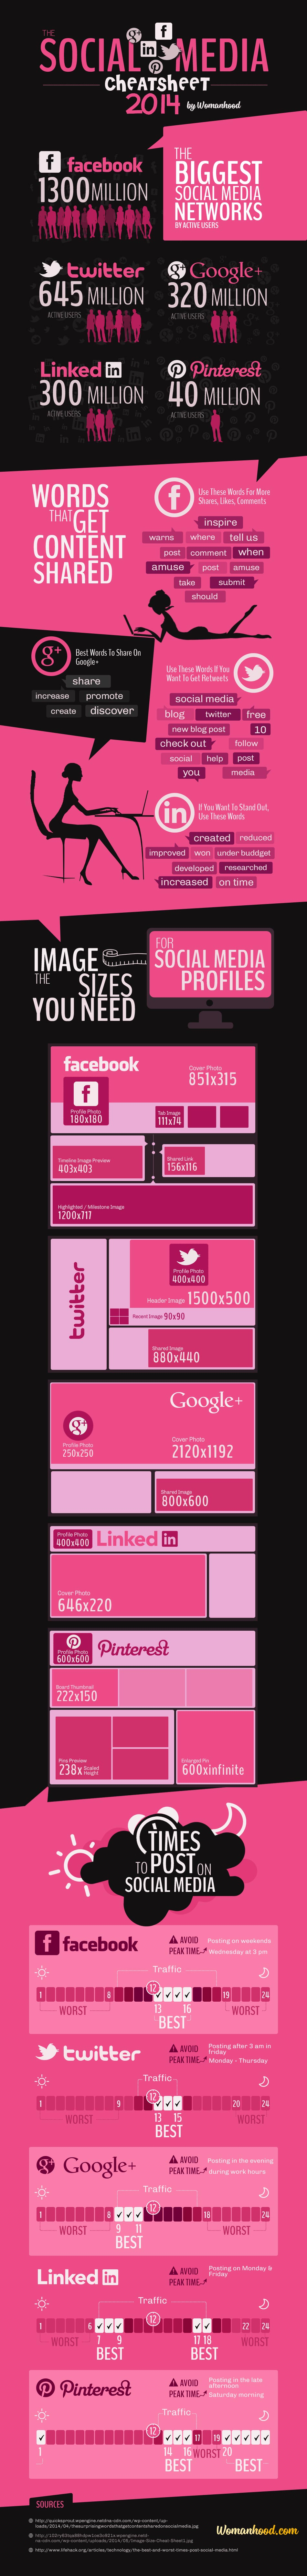 Social Media Cheatsheet for 2014